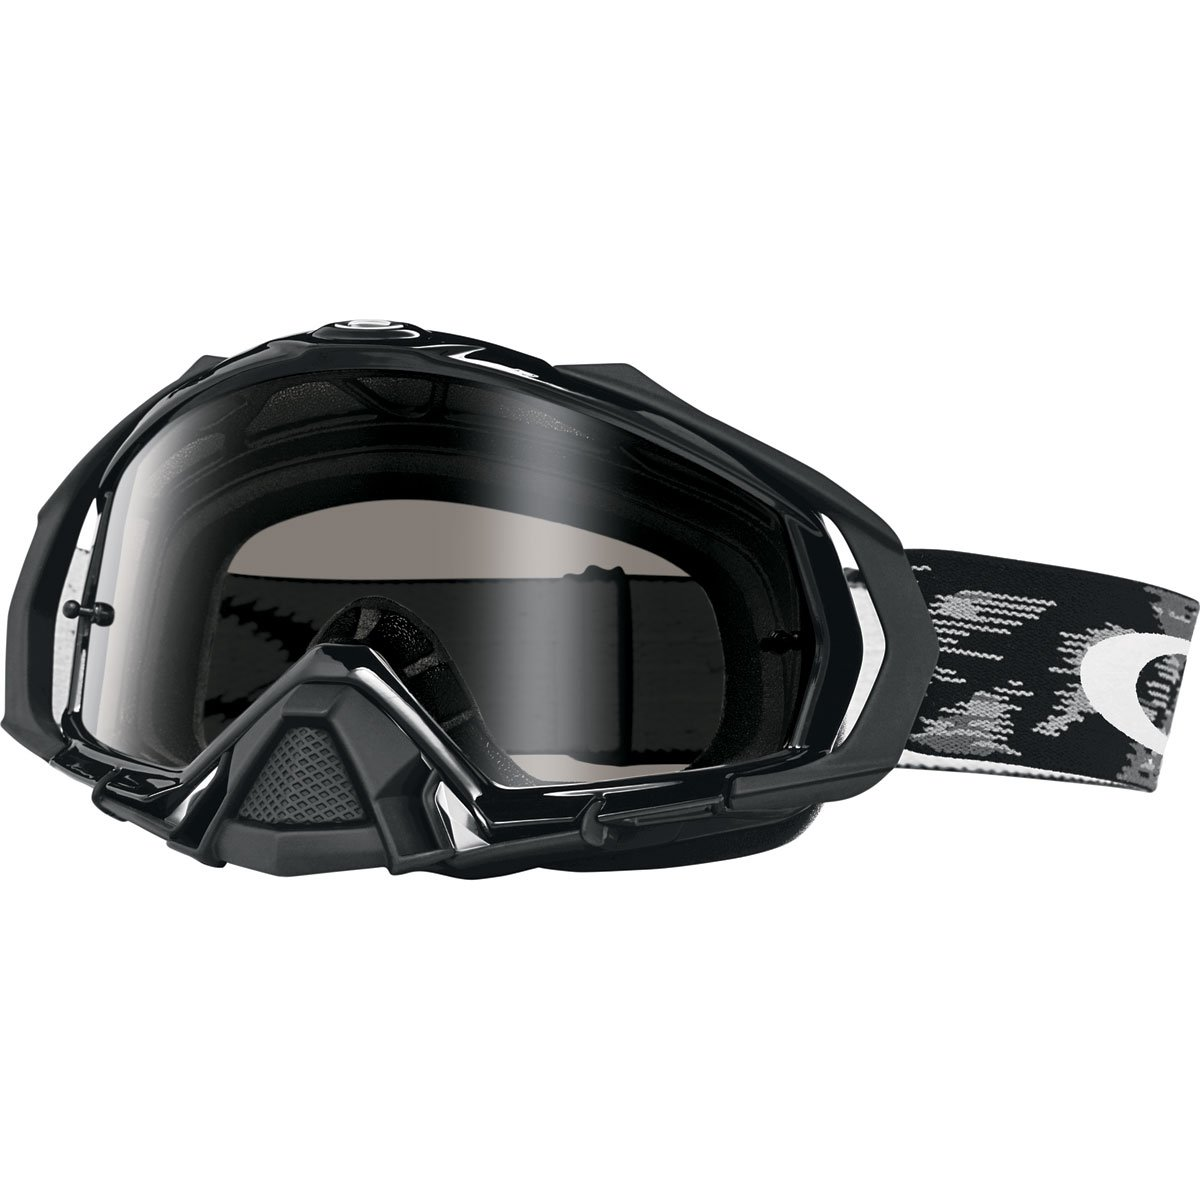 Oakley Mayhem Pro Men's Sand Goggles (Jet Black Frame/Dark Grey Lens)